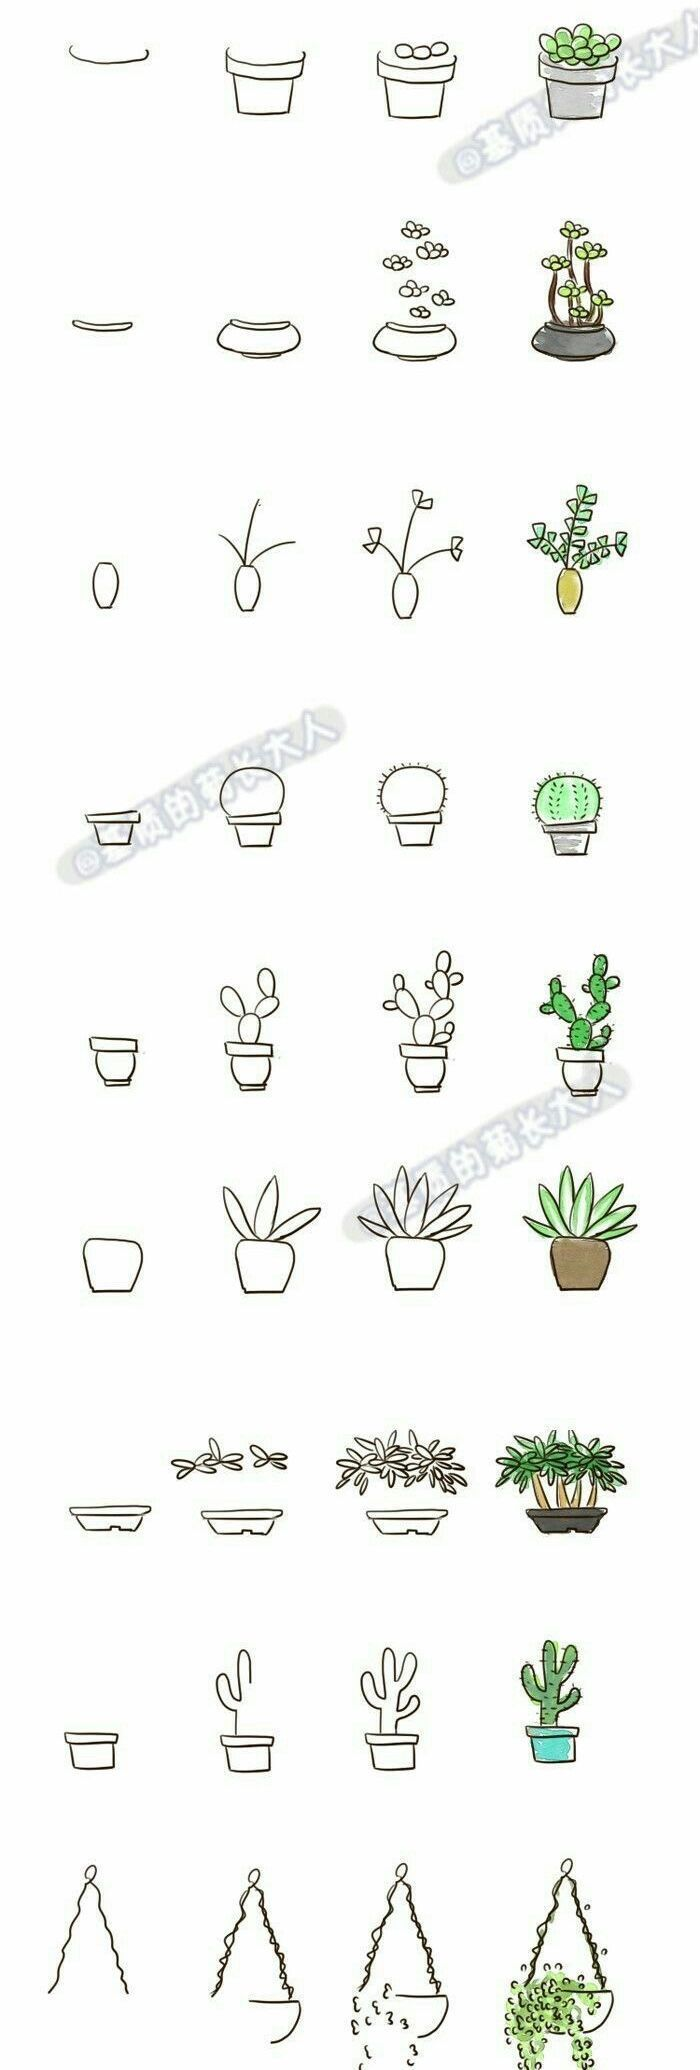 drawing for your bullet journal, succulents cactus step by step Doodle drawing for your bullet journal succulents cactus step by stepDoodle drawing for your bullet journal succulents cactus step by step